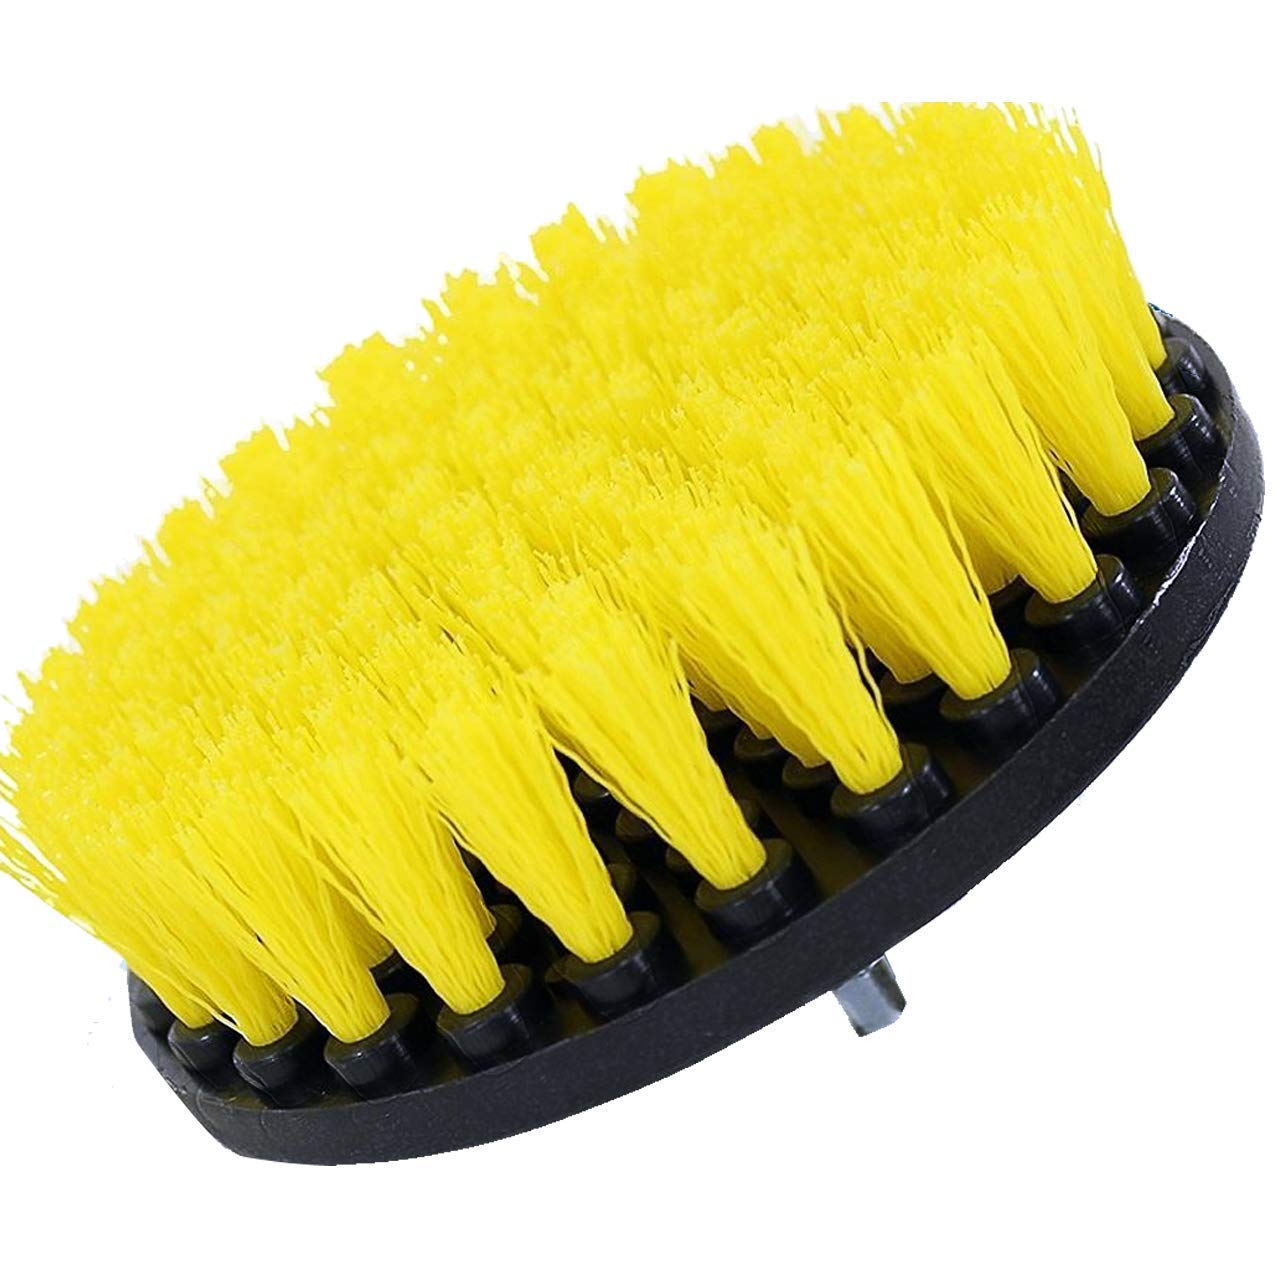 5 Inch Diameter Drill Powered Scrub Brush With Quarter Inch Quick Change Shaft Drillbrush 5in-Lim-Yellow-Short-QC